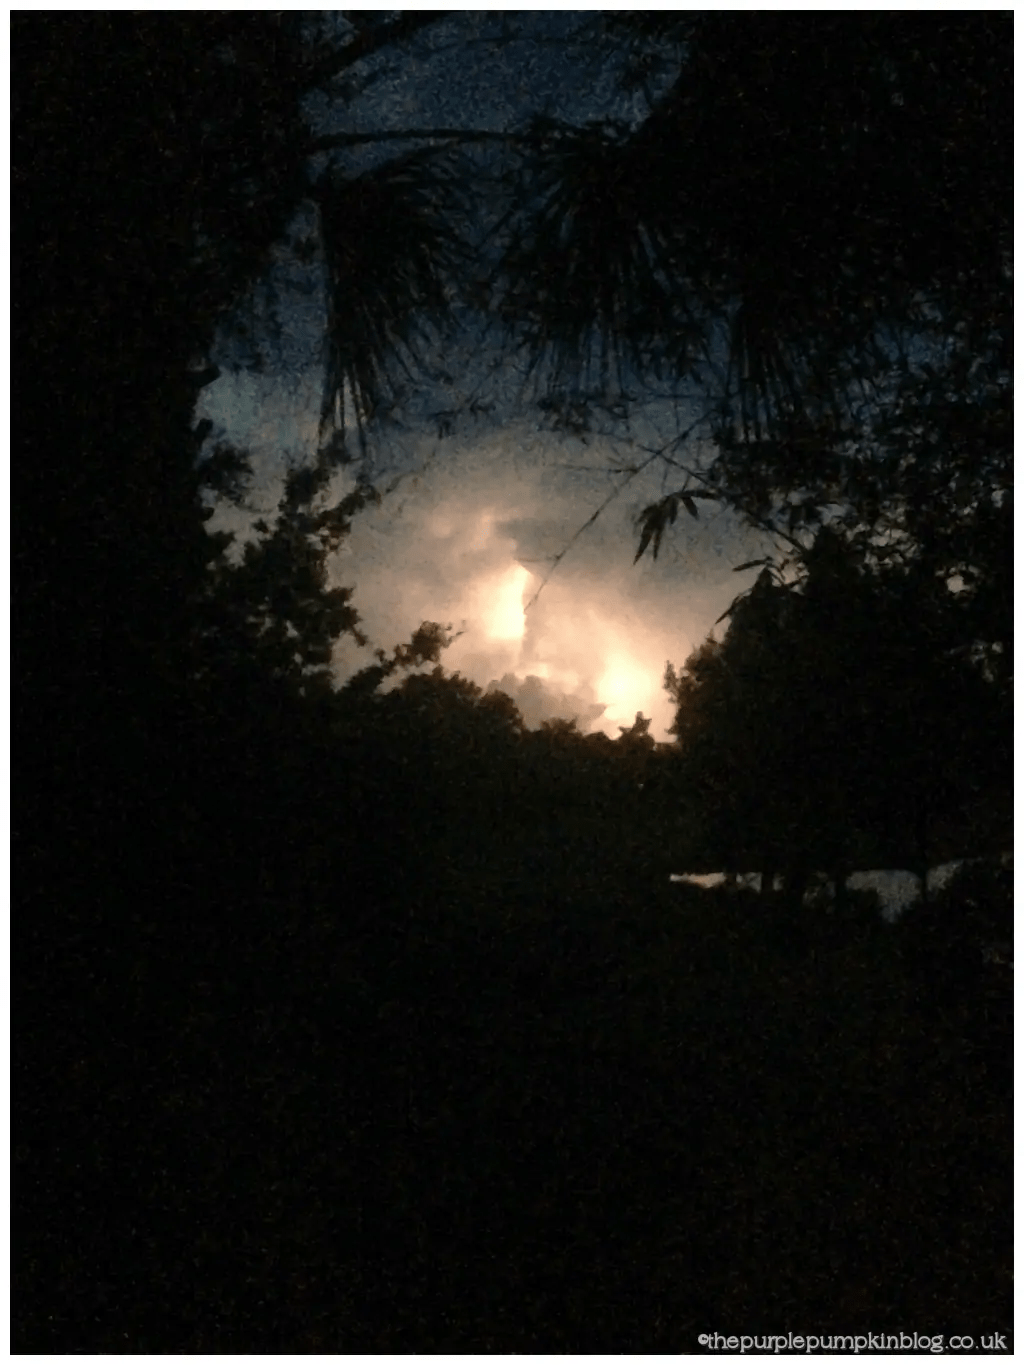 Early Morning Lightning Storm at Old Key West